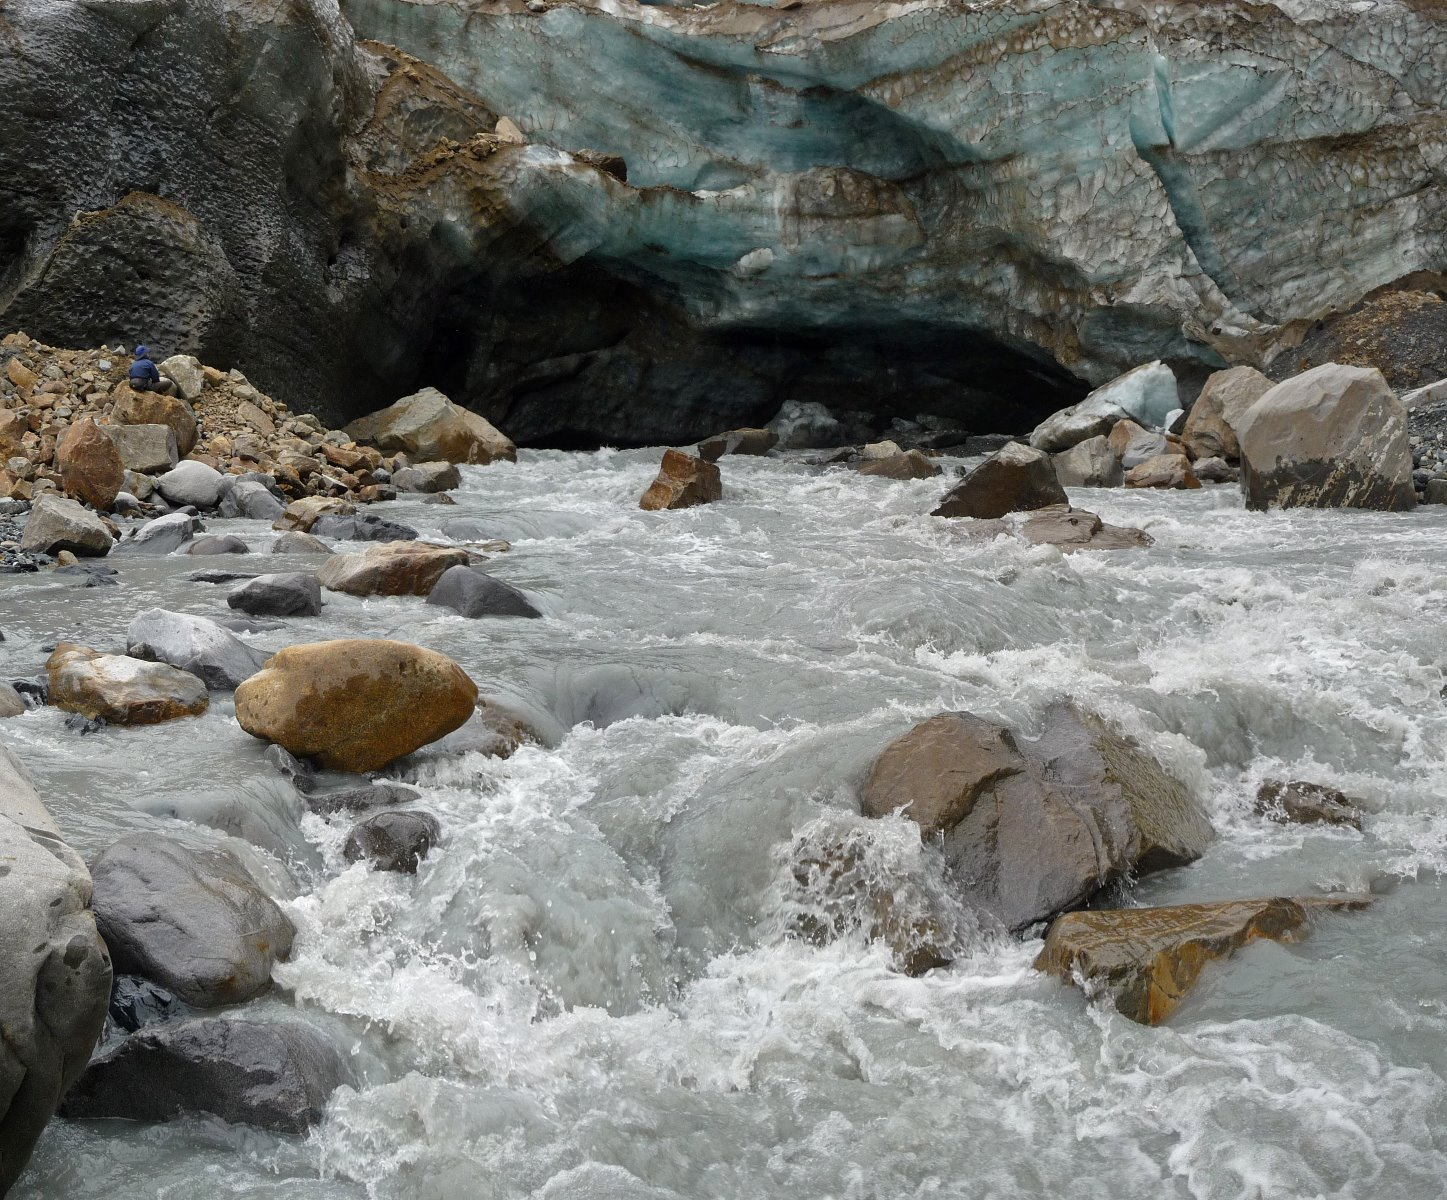 A turbulent river emerges from beneath a glacier.